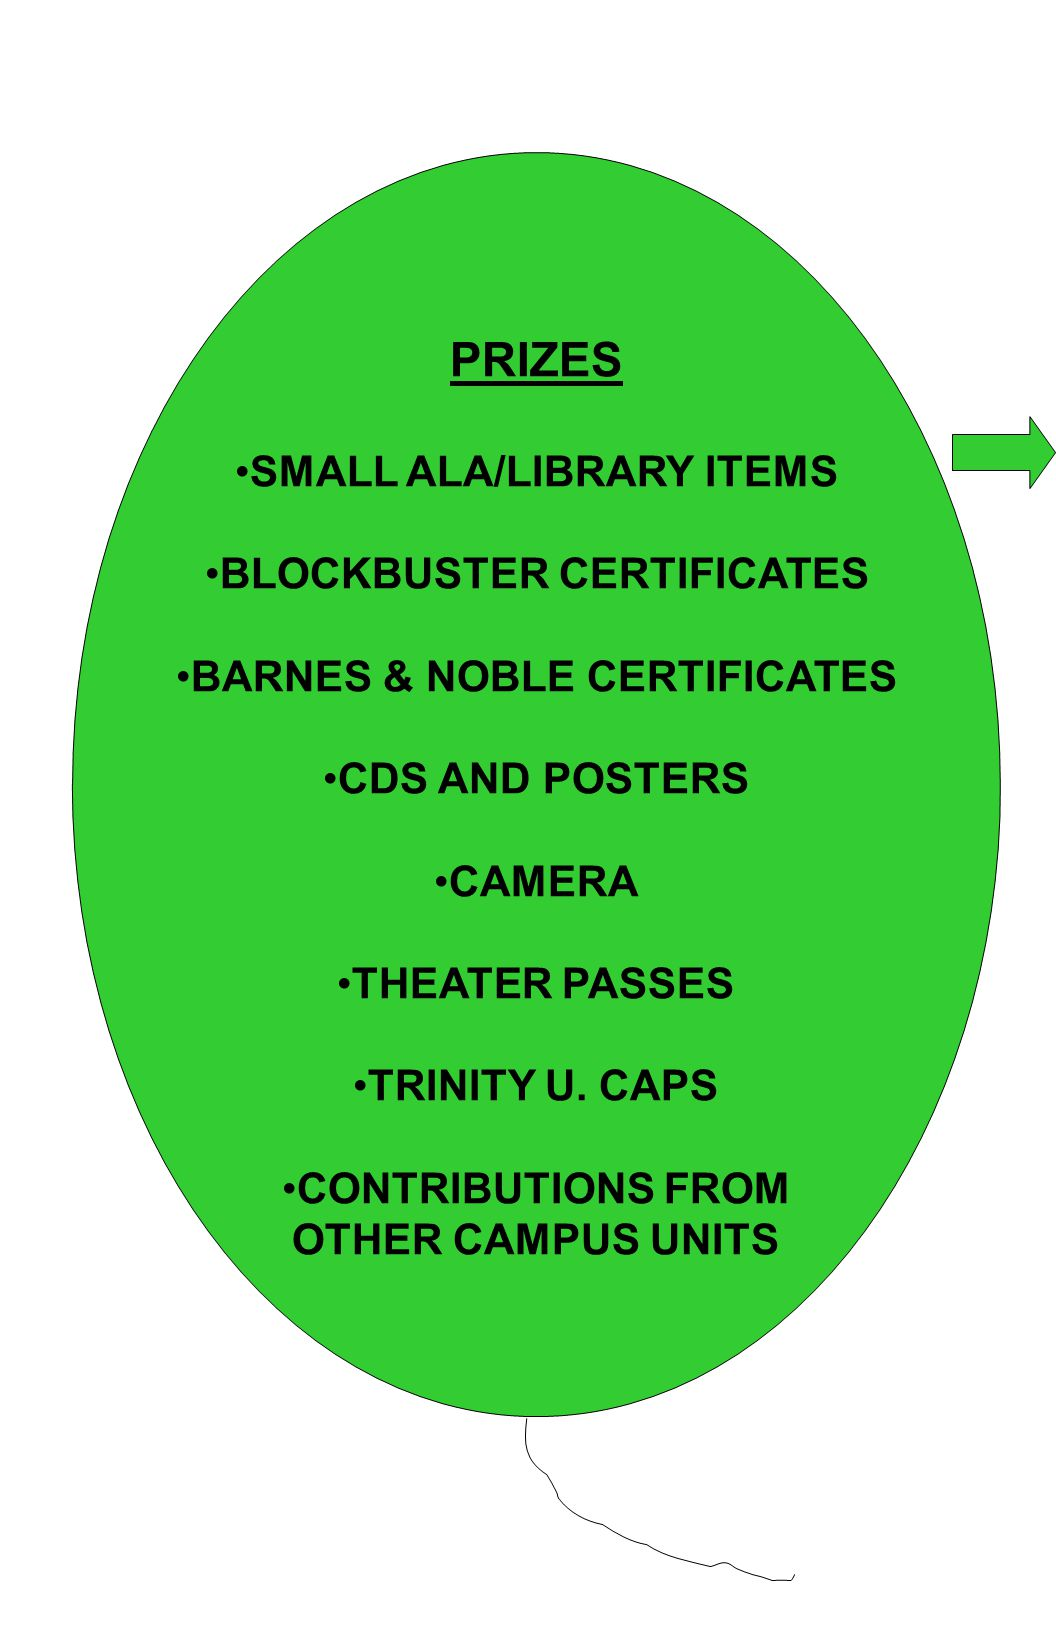 PRIZES SMALL ALA/LIBRARY ITEMS BLOCKBUSTER CERTIFICATES BARNES & NOBLE CERTIFICATES CDS AND POSTERS CAMERA THEATER PASSES TRINITY U.